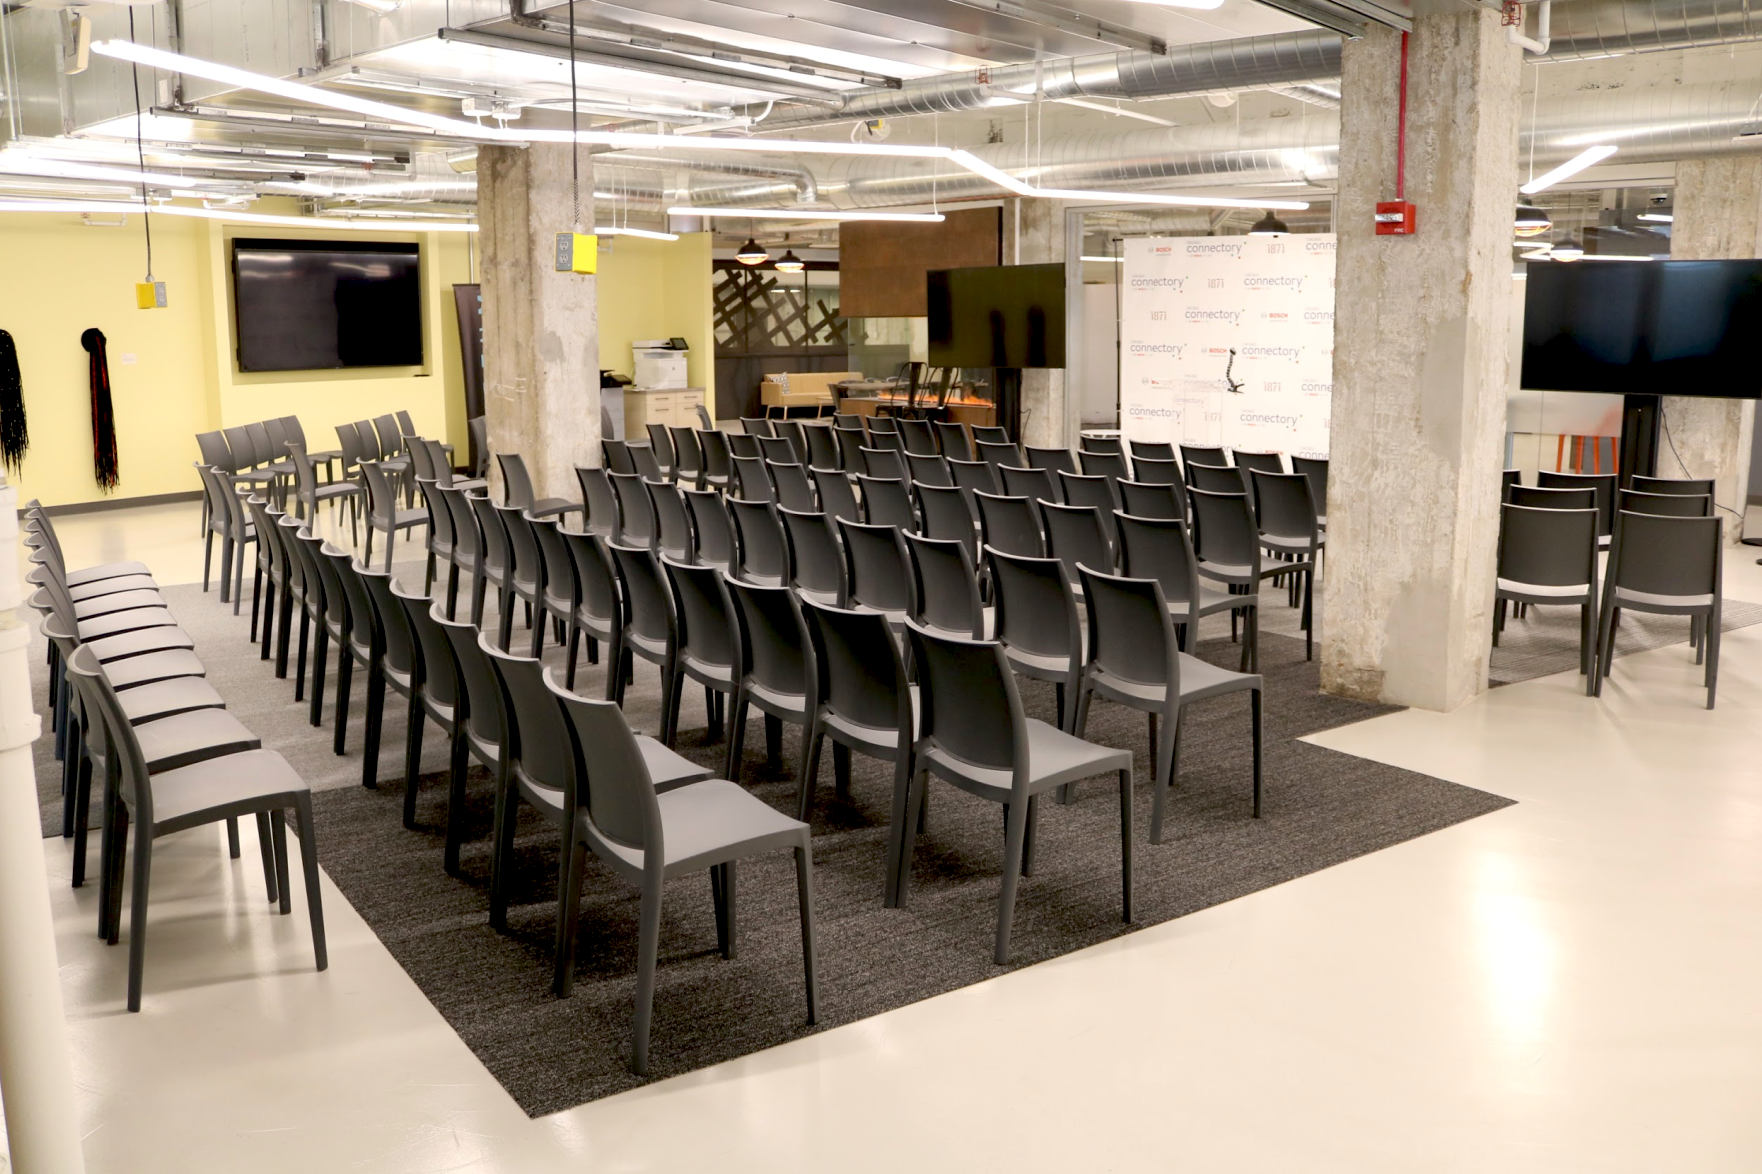 IoT Event Venue to Host Meetups & Corporate Events | Chicago Connectory